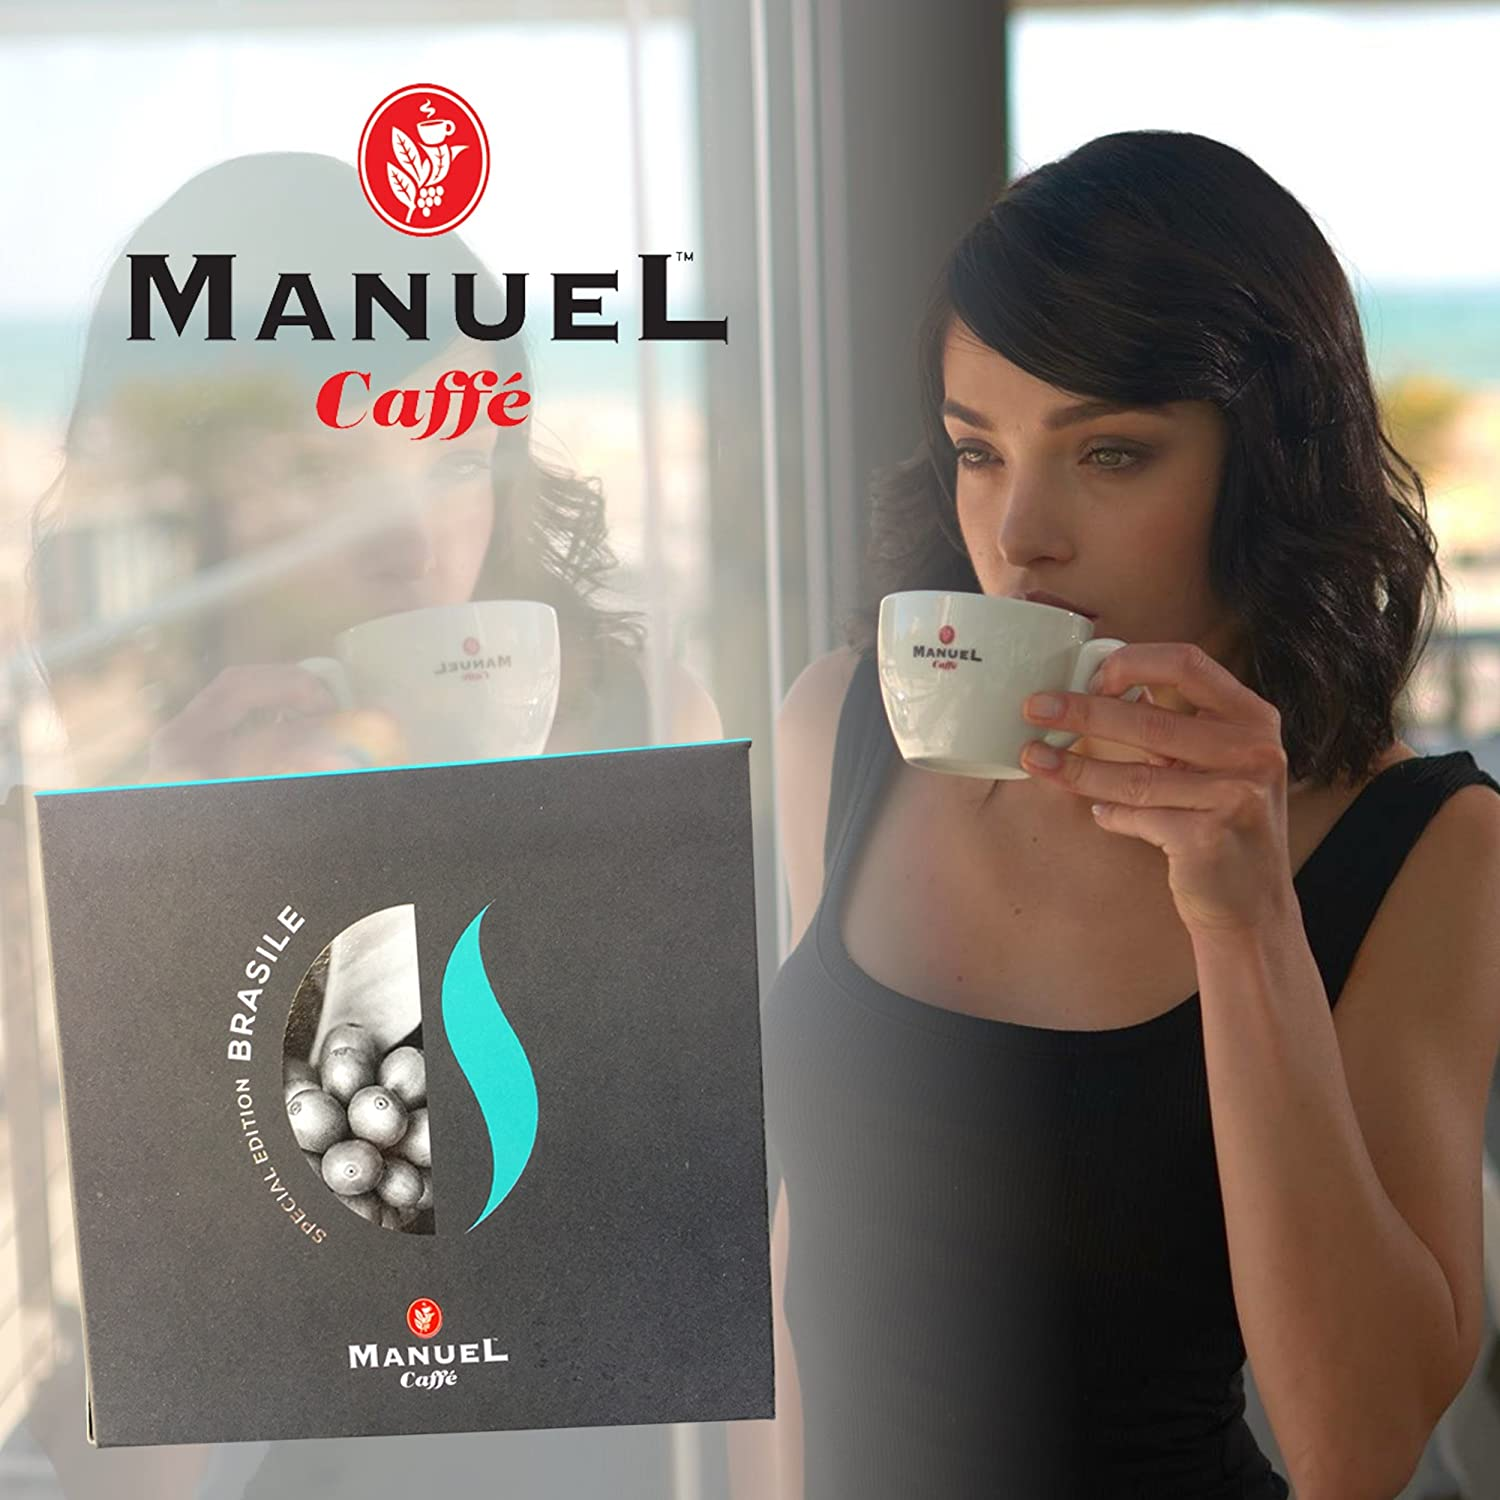 Roasted Italian Premium Espresso, Manuel Caffe. Intense Aroma, Fine And Mild, Aromatic In The Cup. Thick Crema. See Other Roast Selection In Our Amazon ...